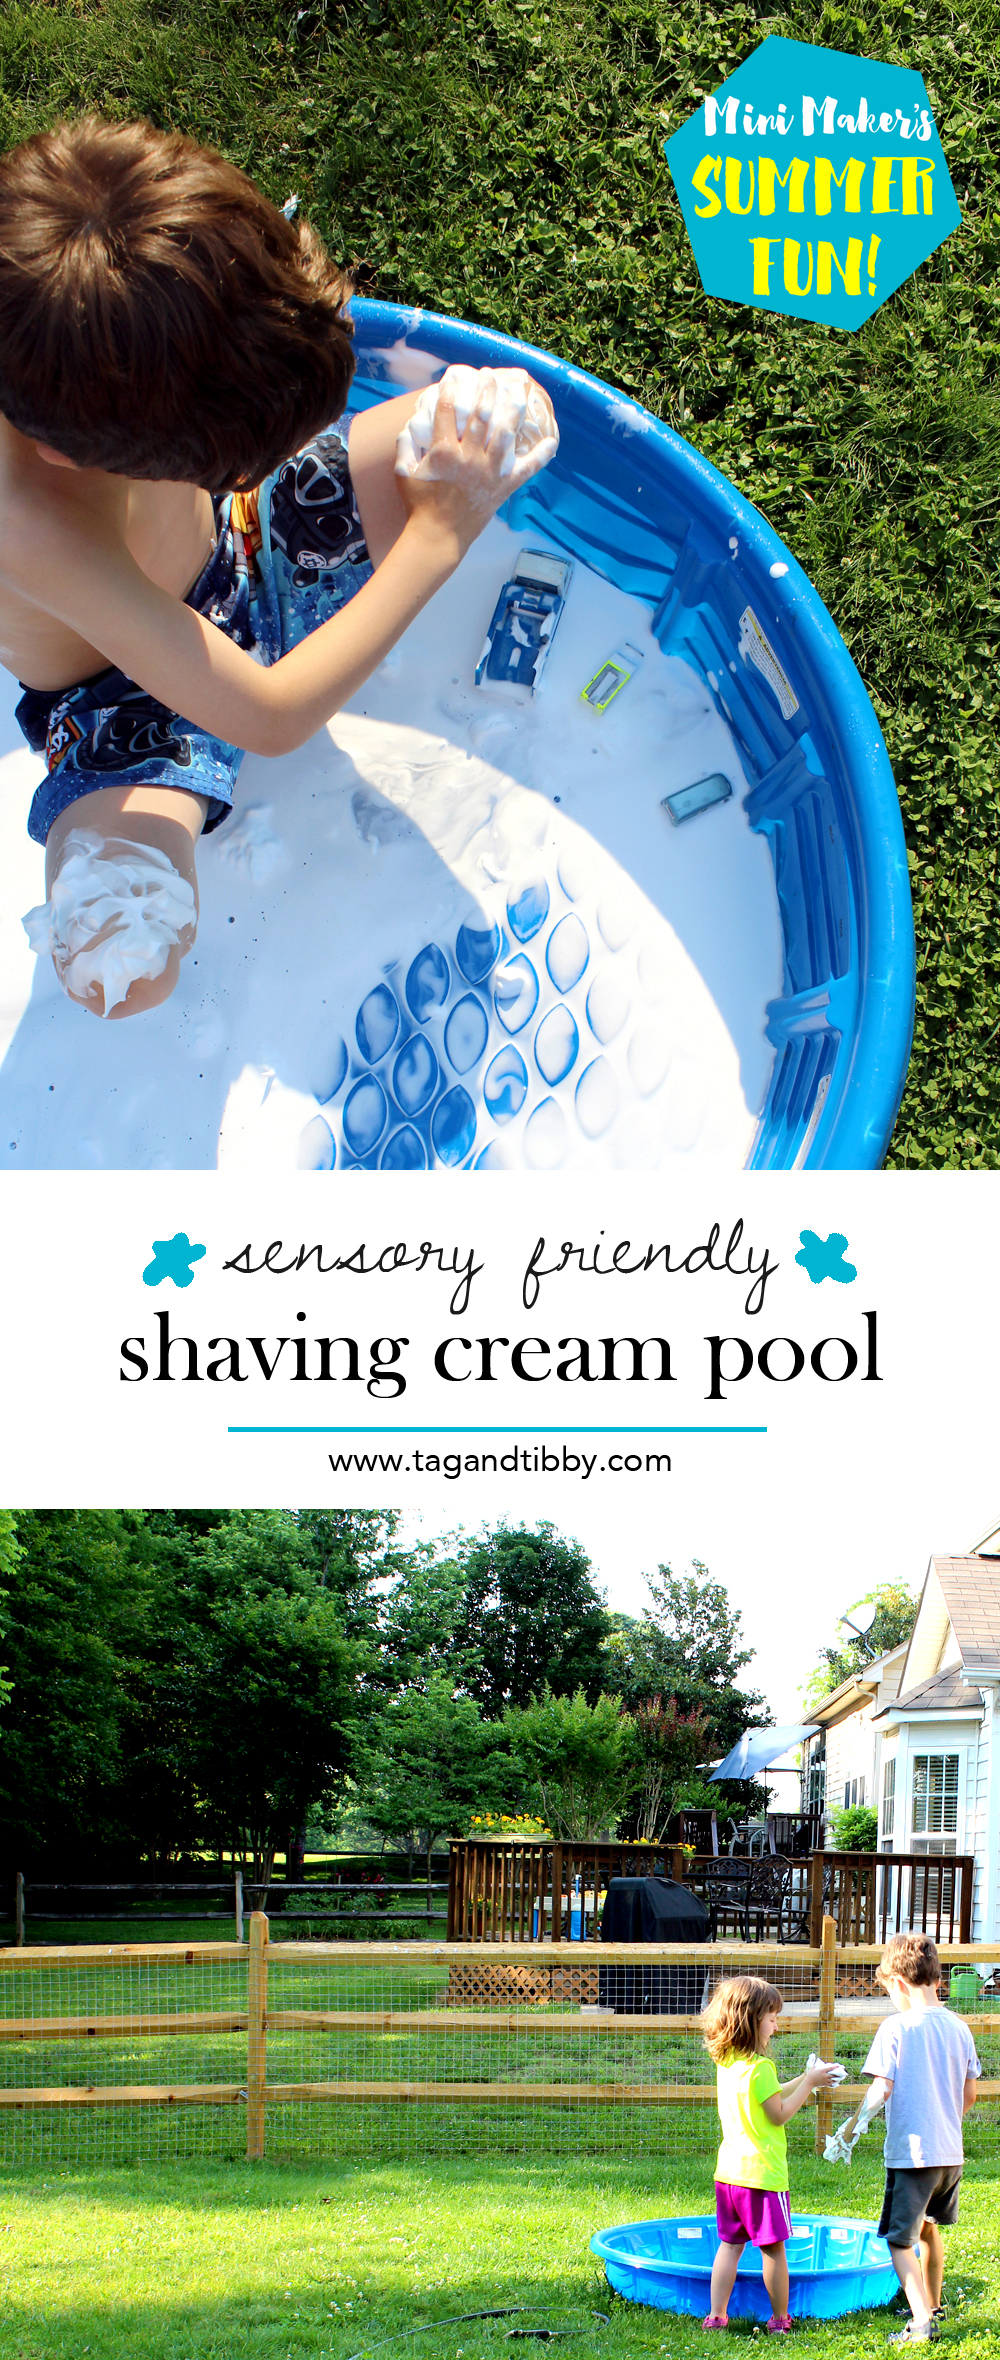 sensory friendly shaving cream pool idea for elementary age kids